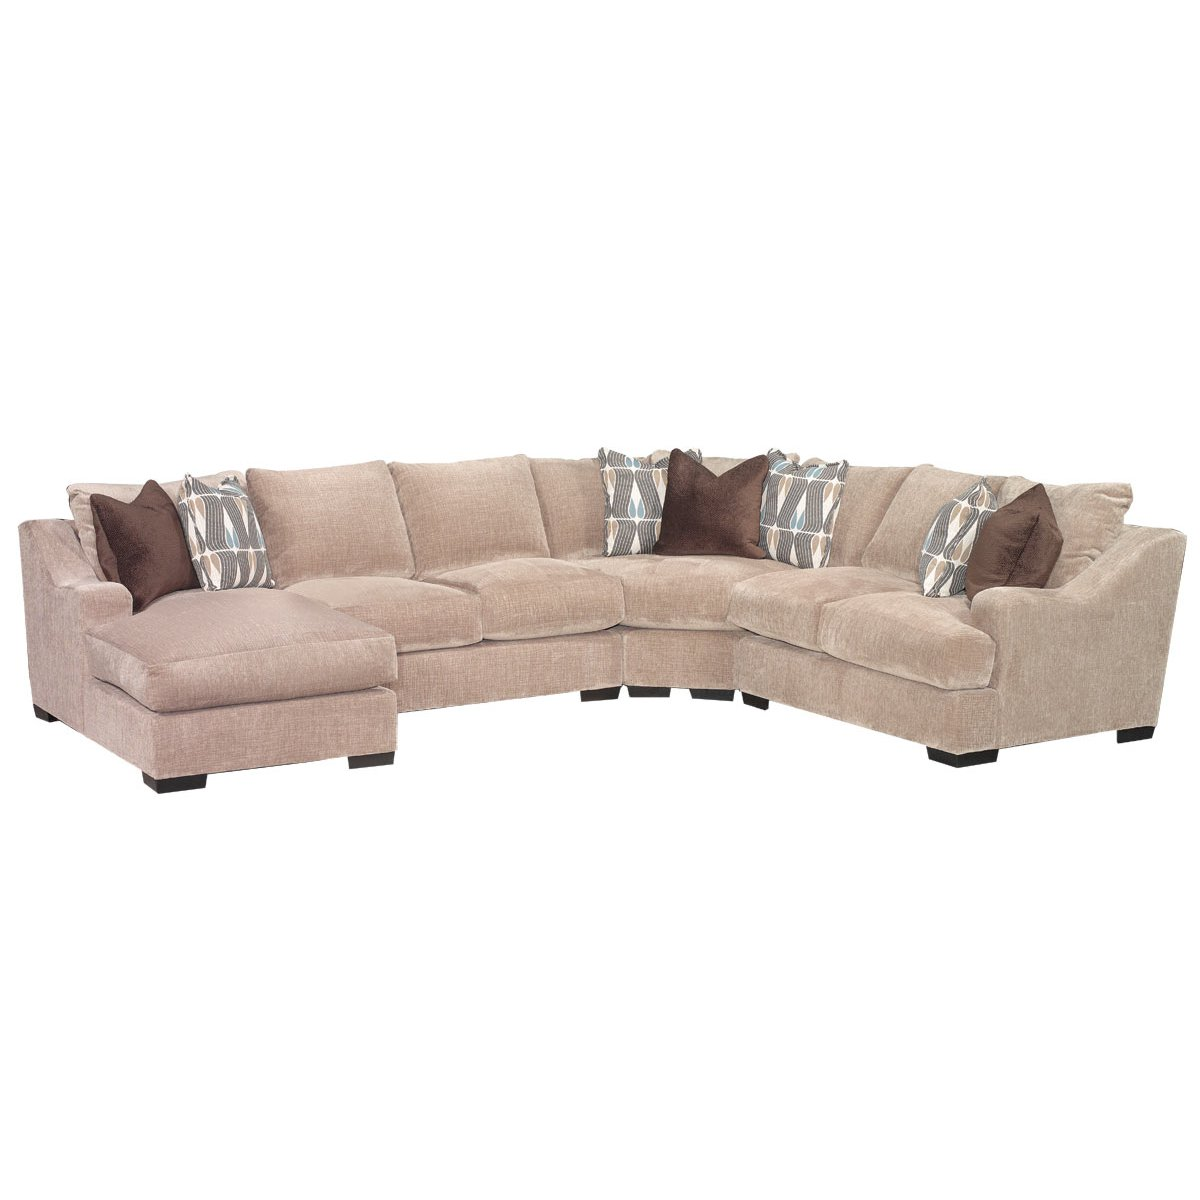 Brown Casual Clic 4 Piece Sectional Sofa Monarch